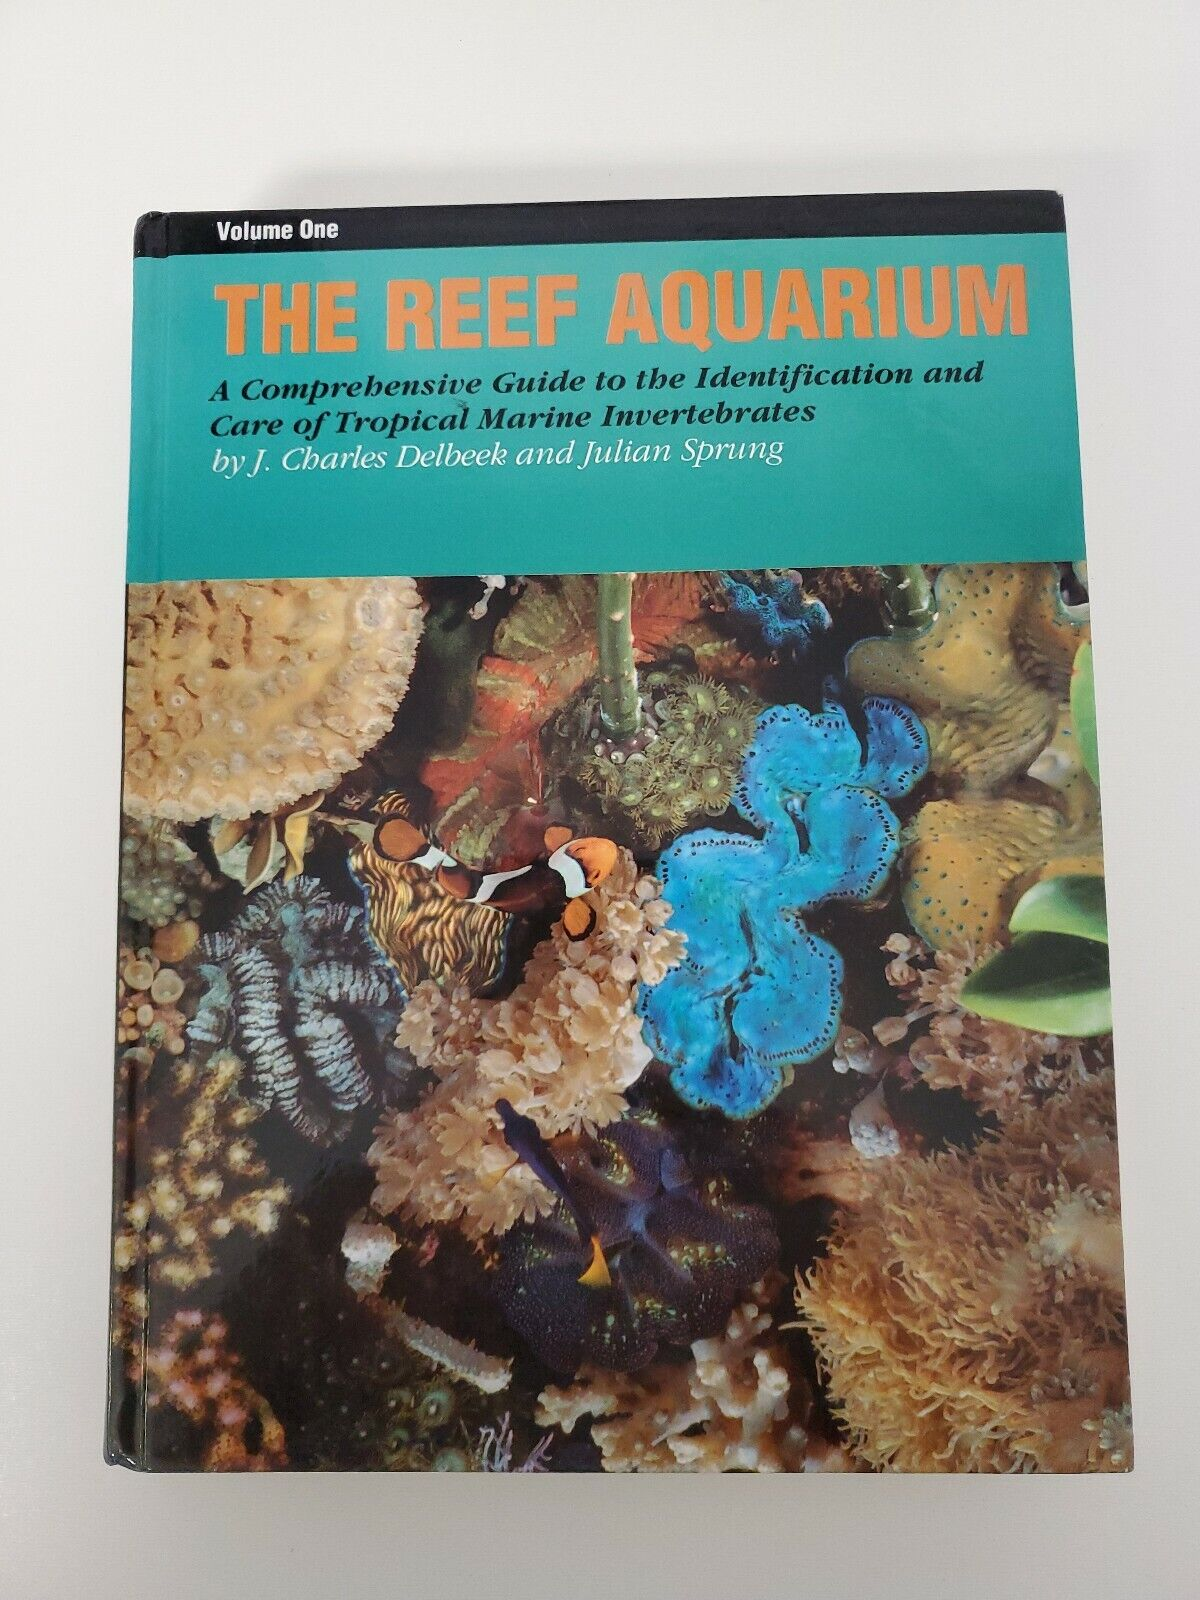 A Comprehensive Guide to the Identification and Care of Tropical Marine Invertebrates Volume Two The Reef Aquarium